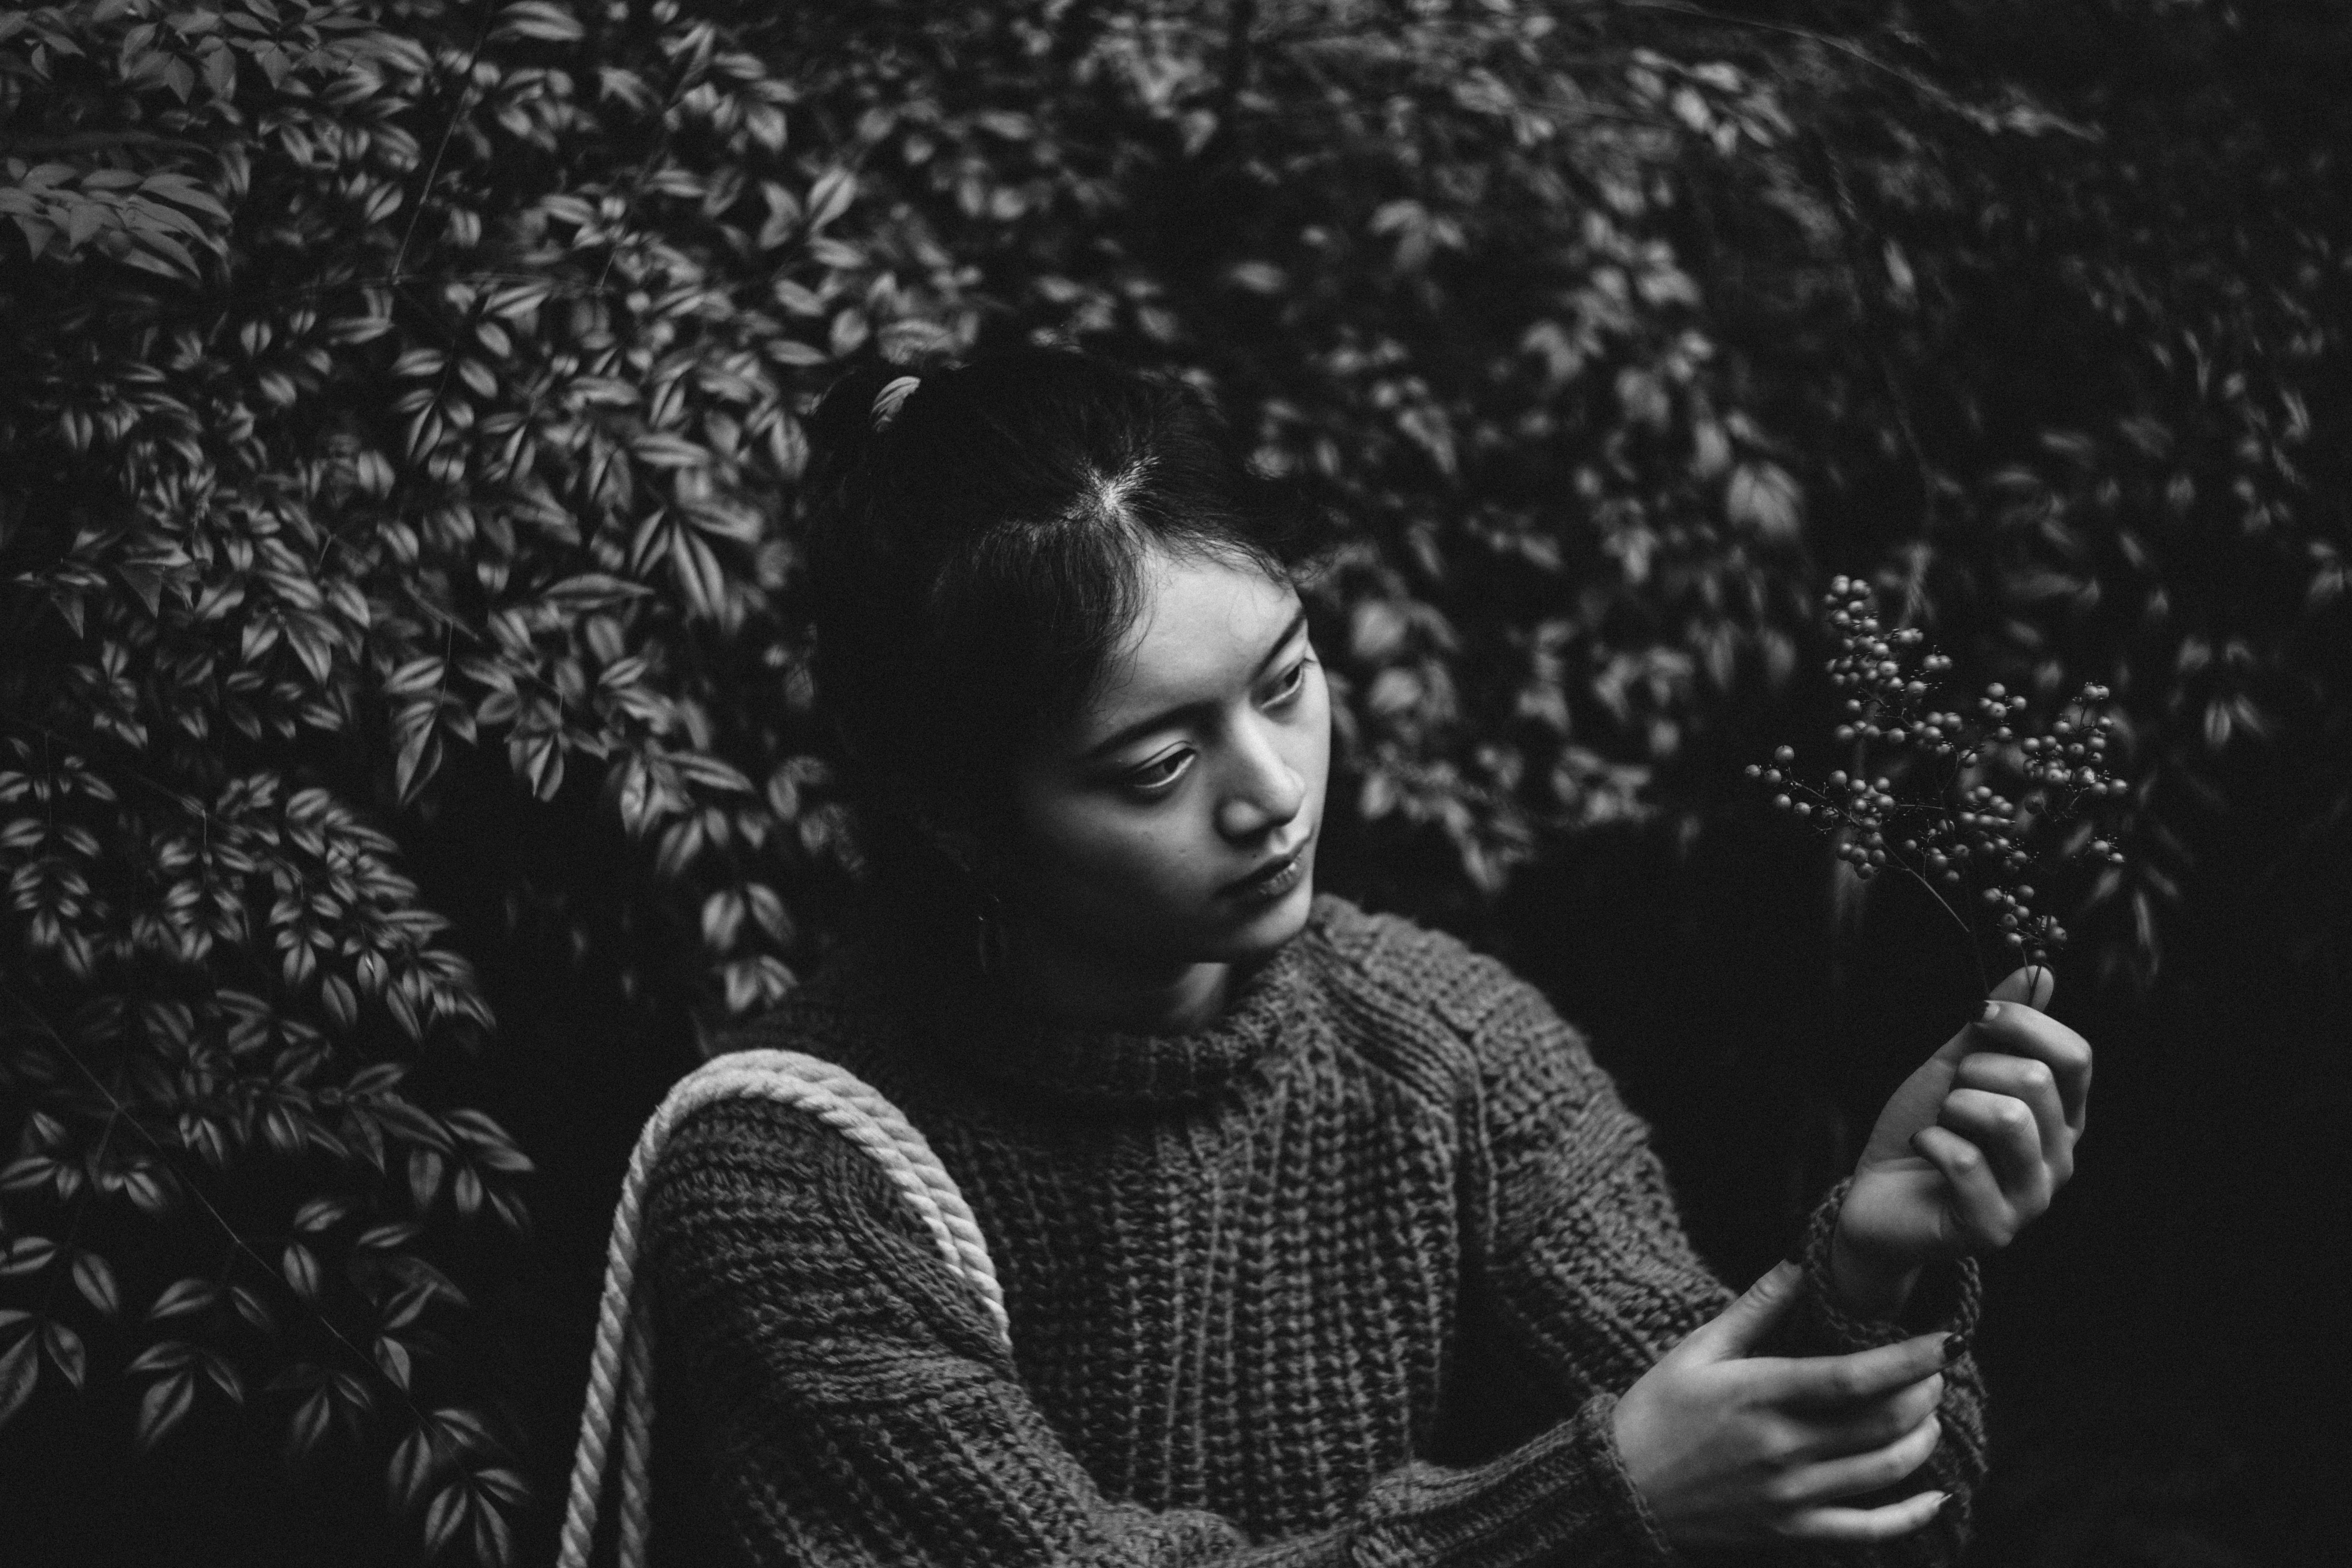 grayscale photography of woman holding leaf